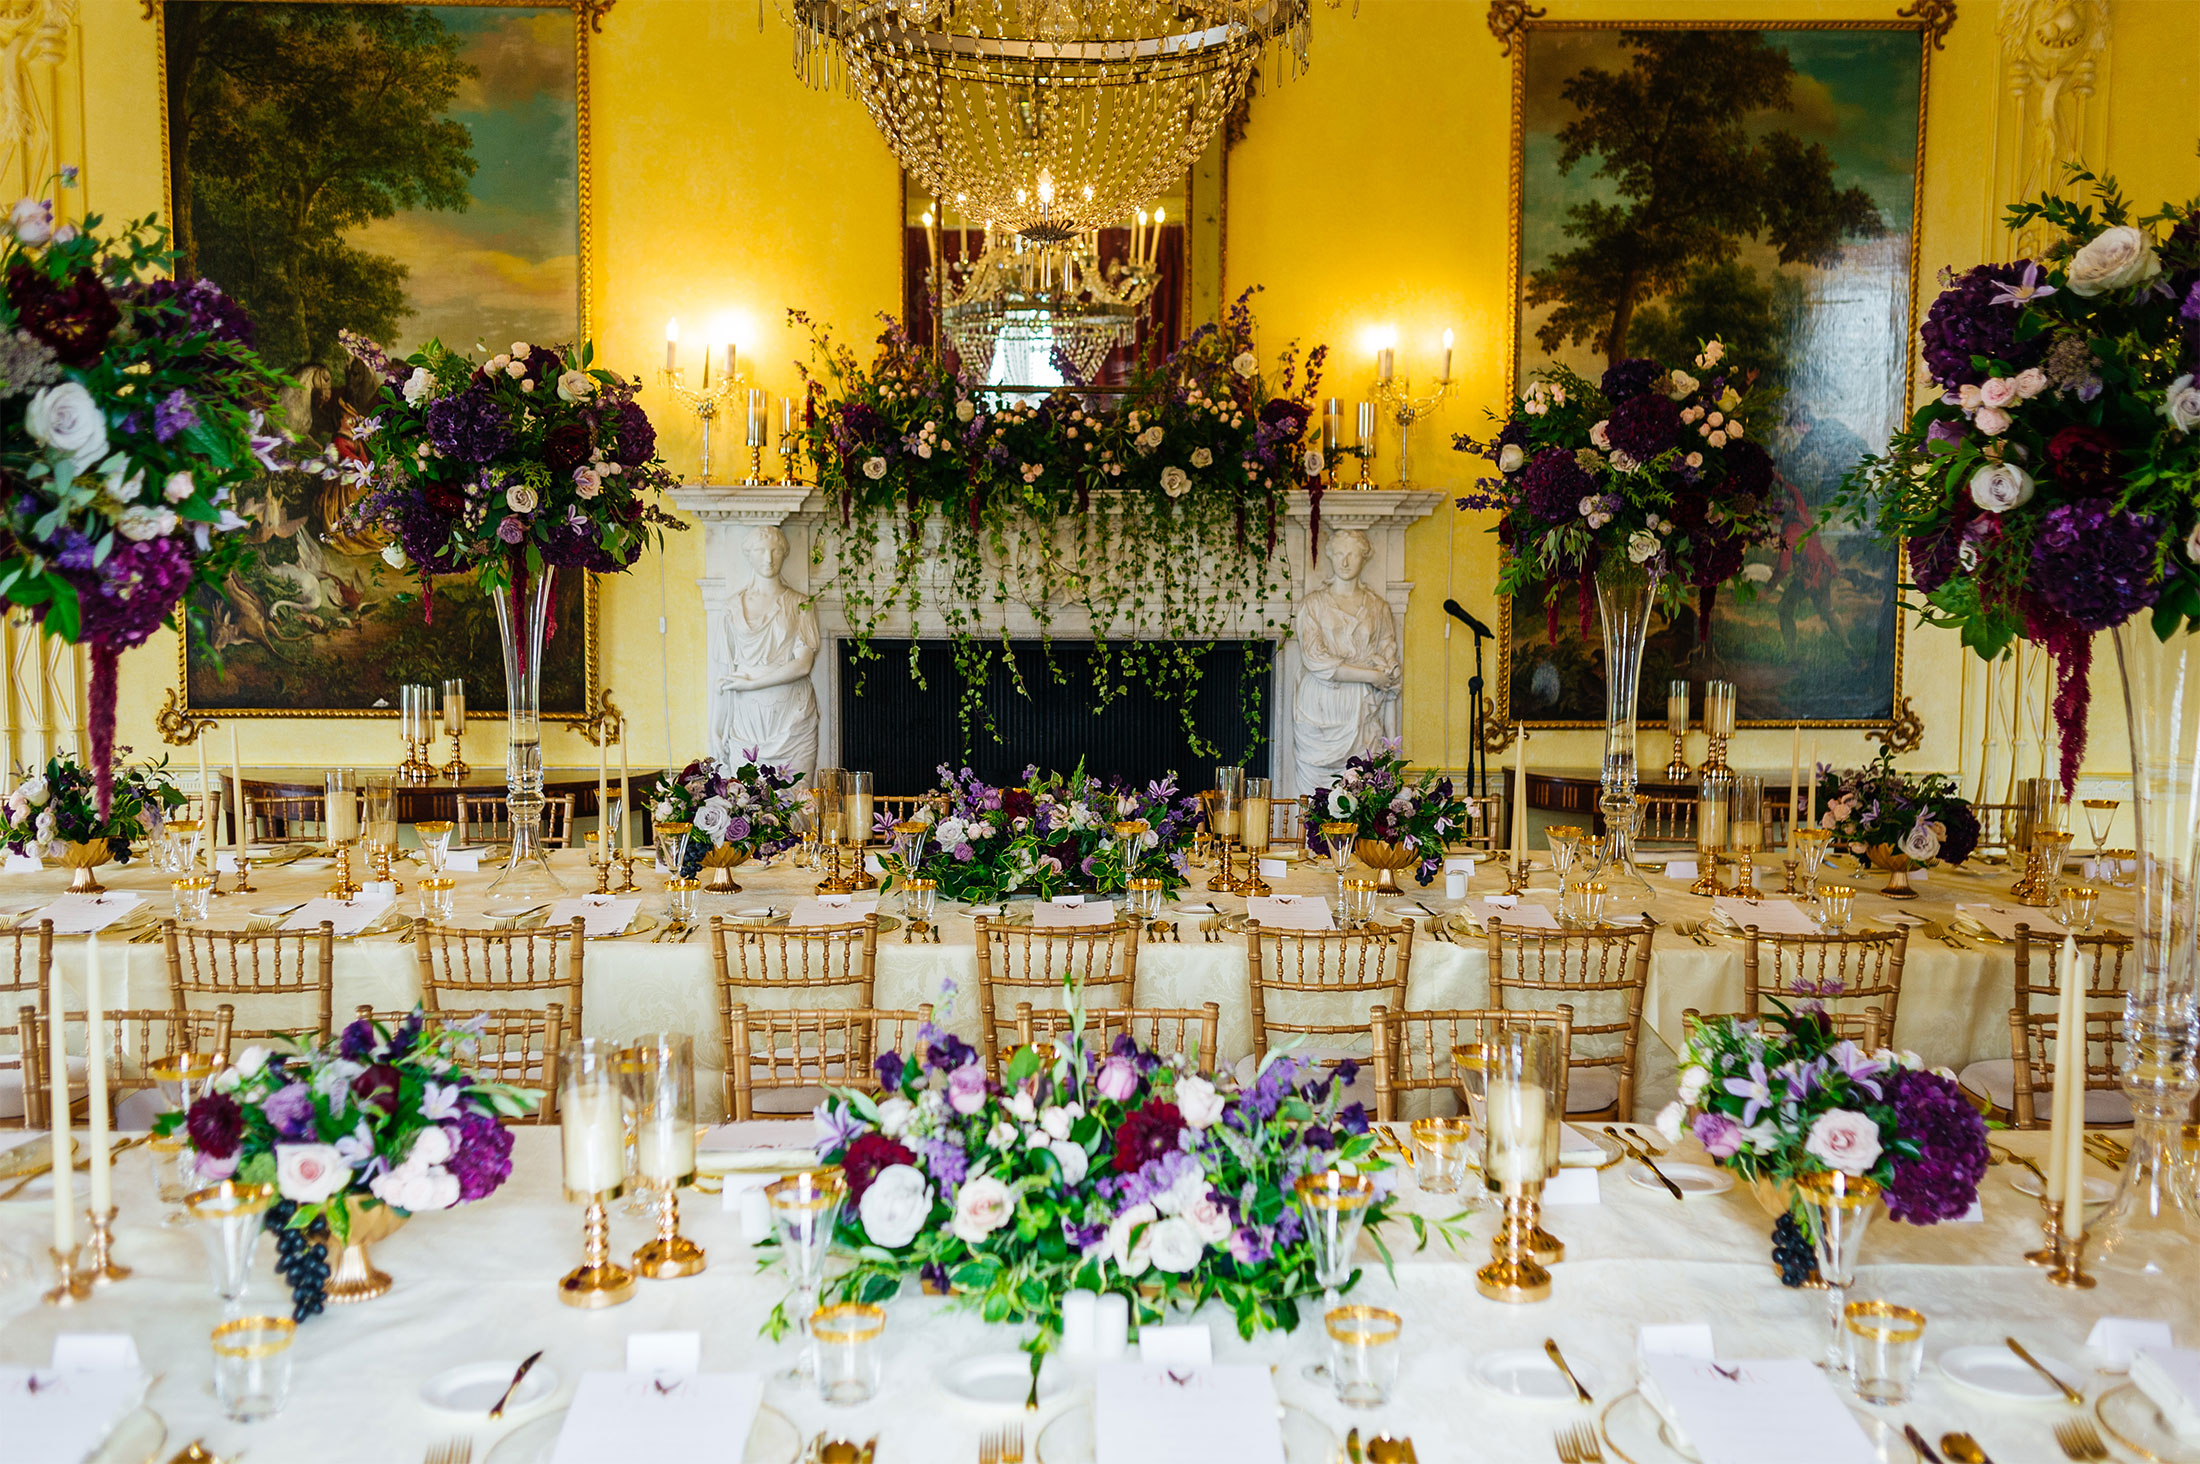 Kilruddery House Wedding Flowers0981.jpg